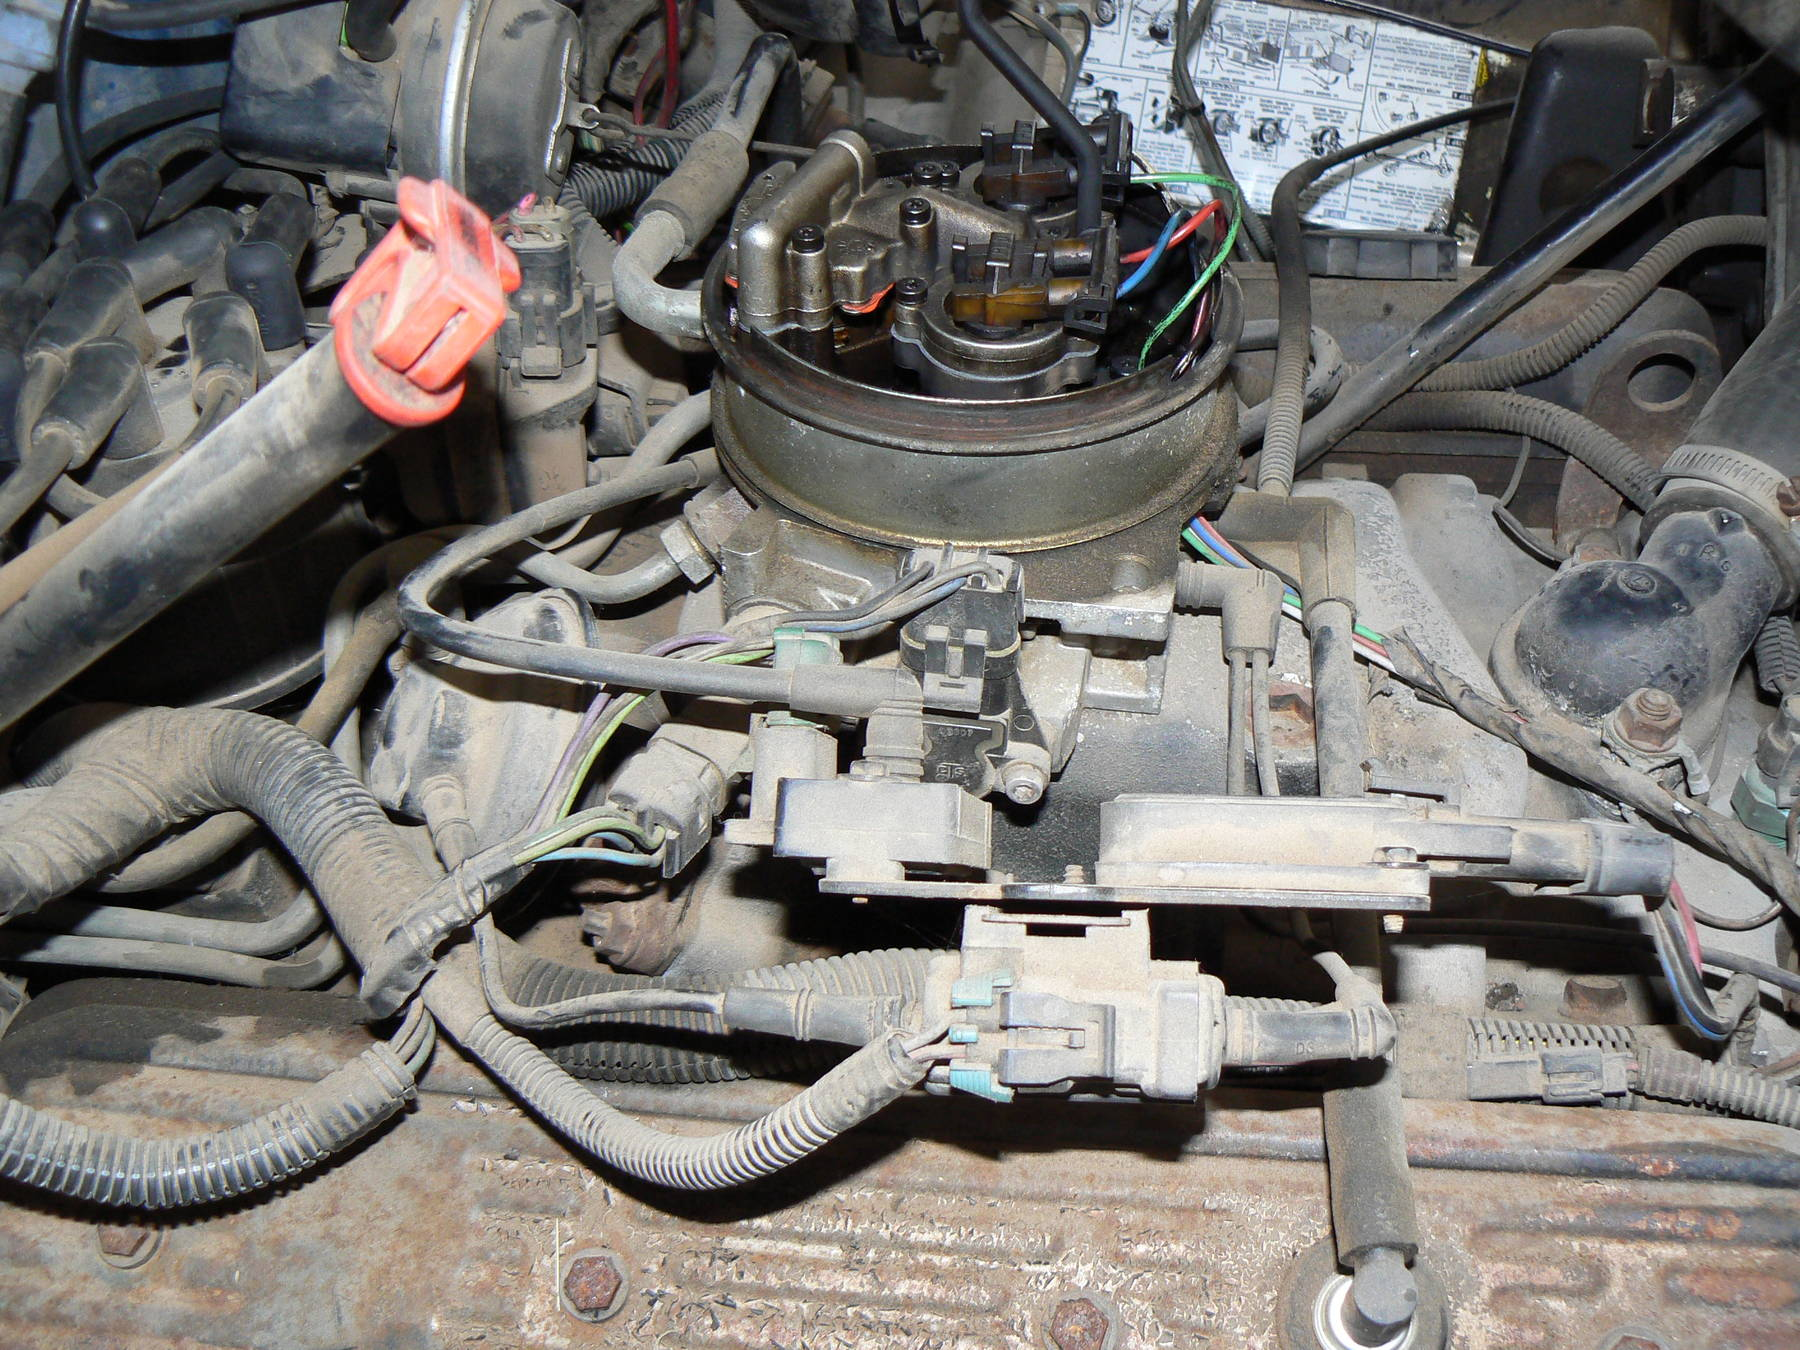 Wiring Diagram Chevy 350 Tbi Wiring Harness Diagram 1994 Chevy 350